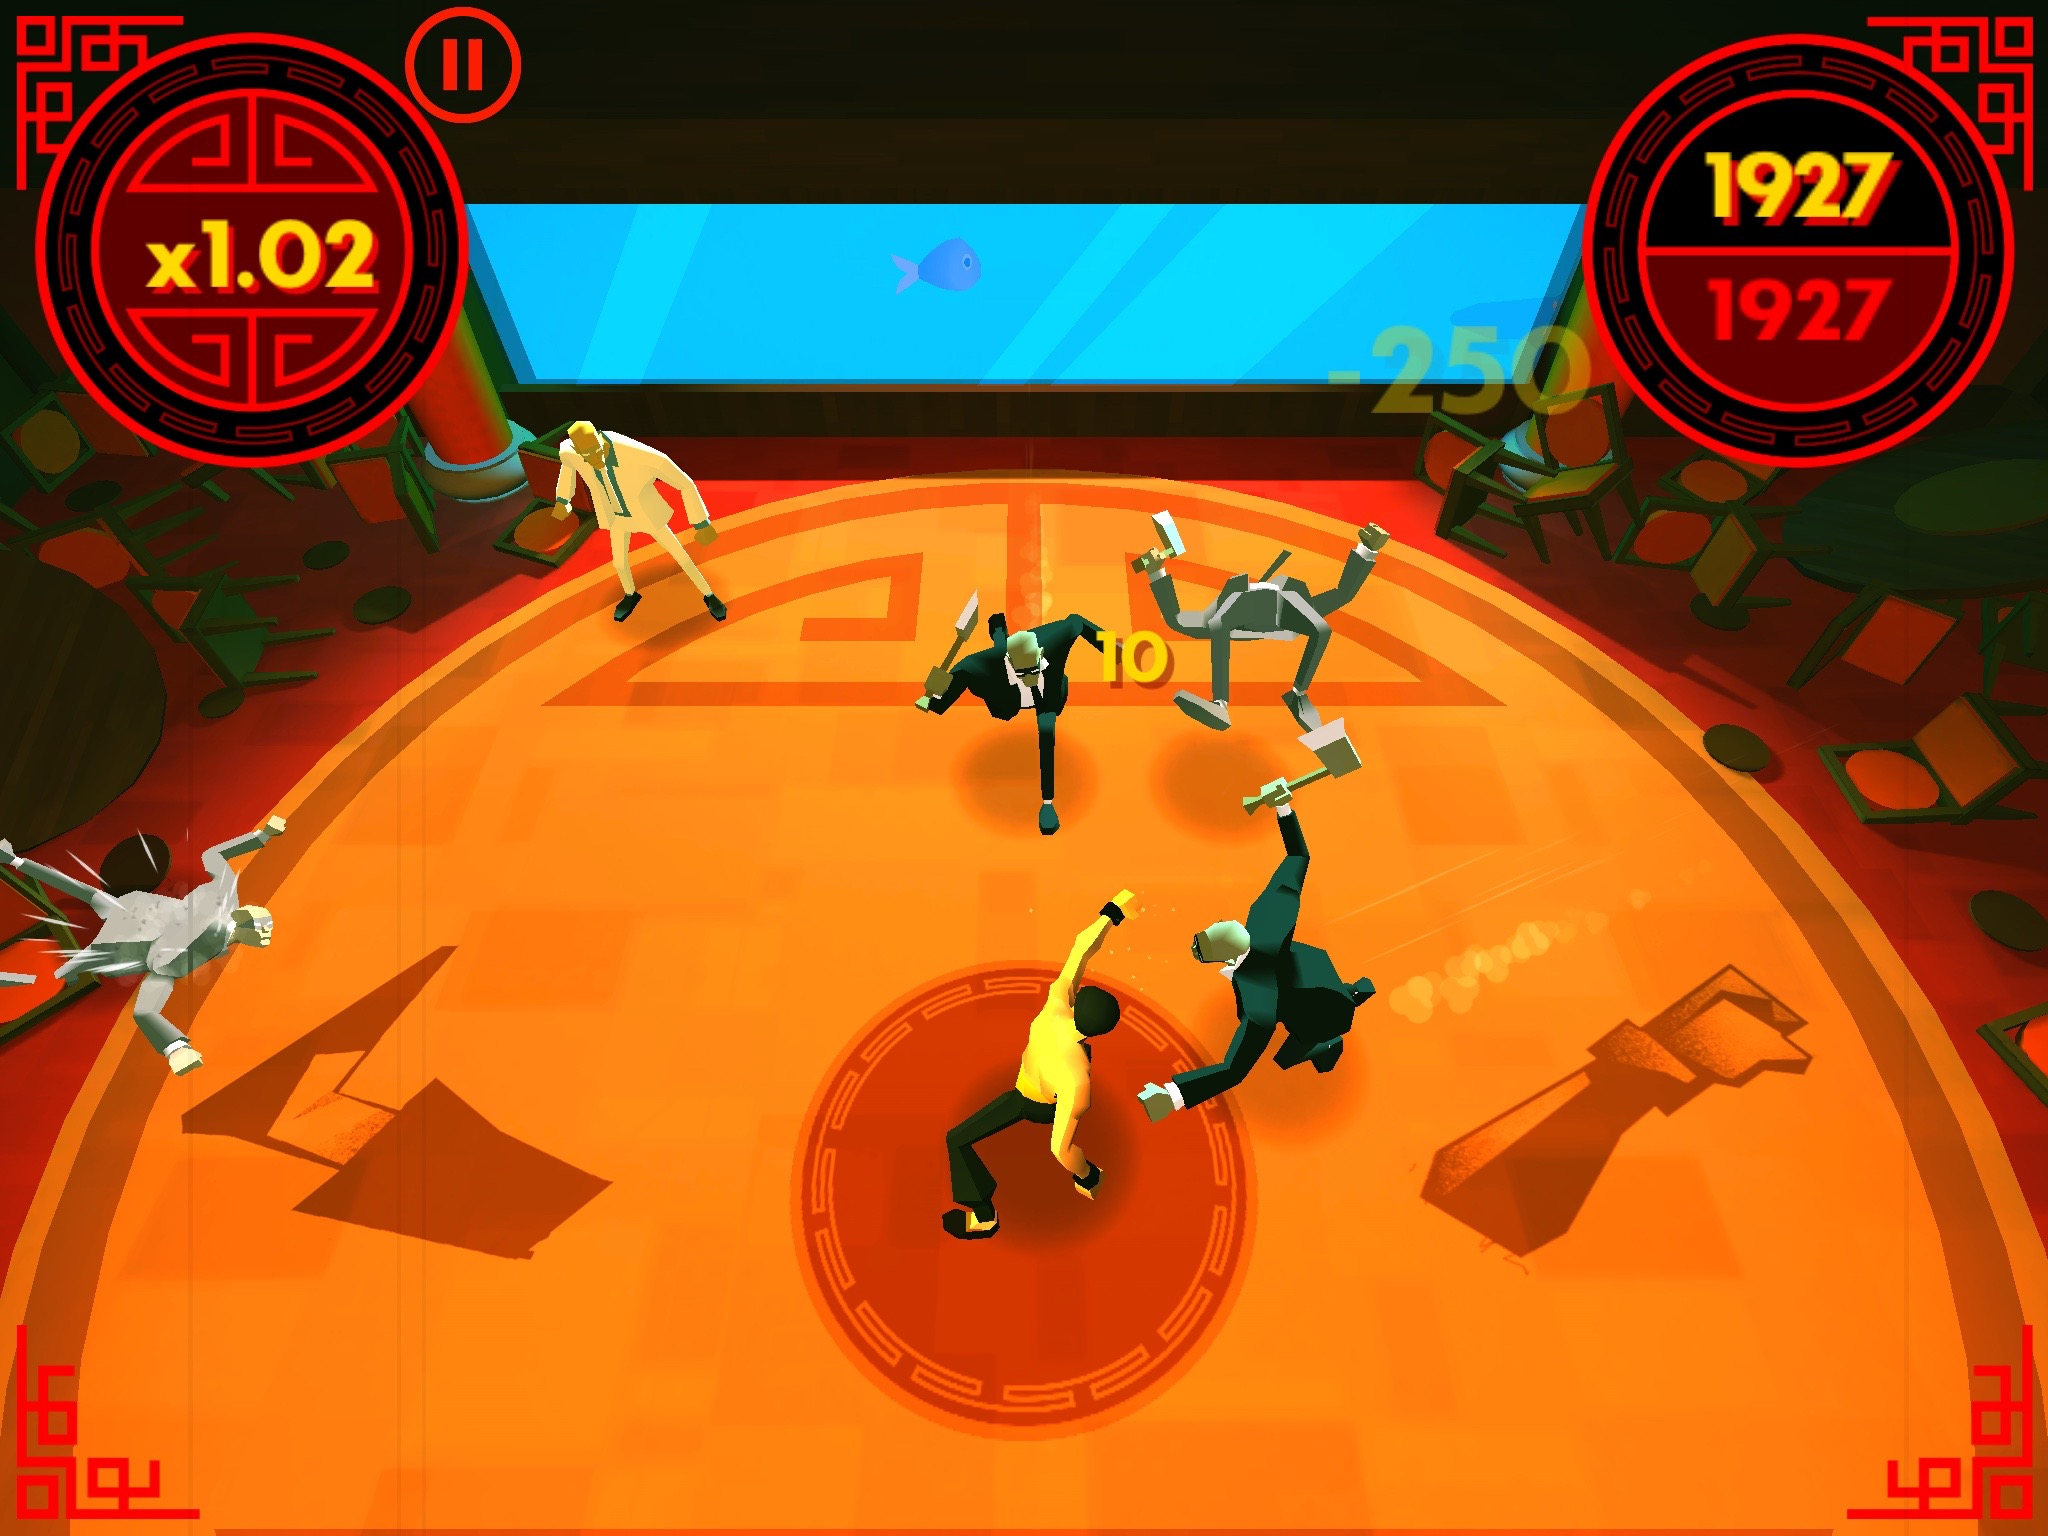 Fingers of Fury - A well executed tap-based brawler